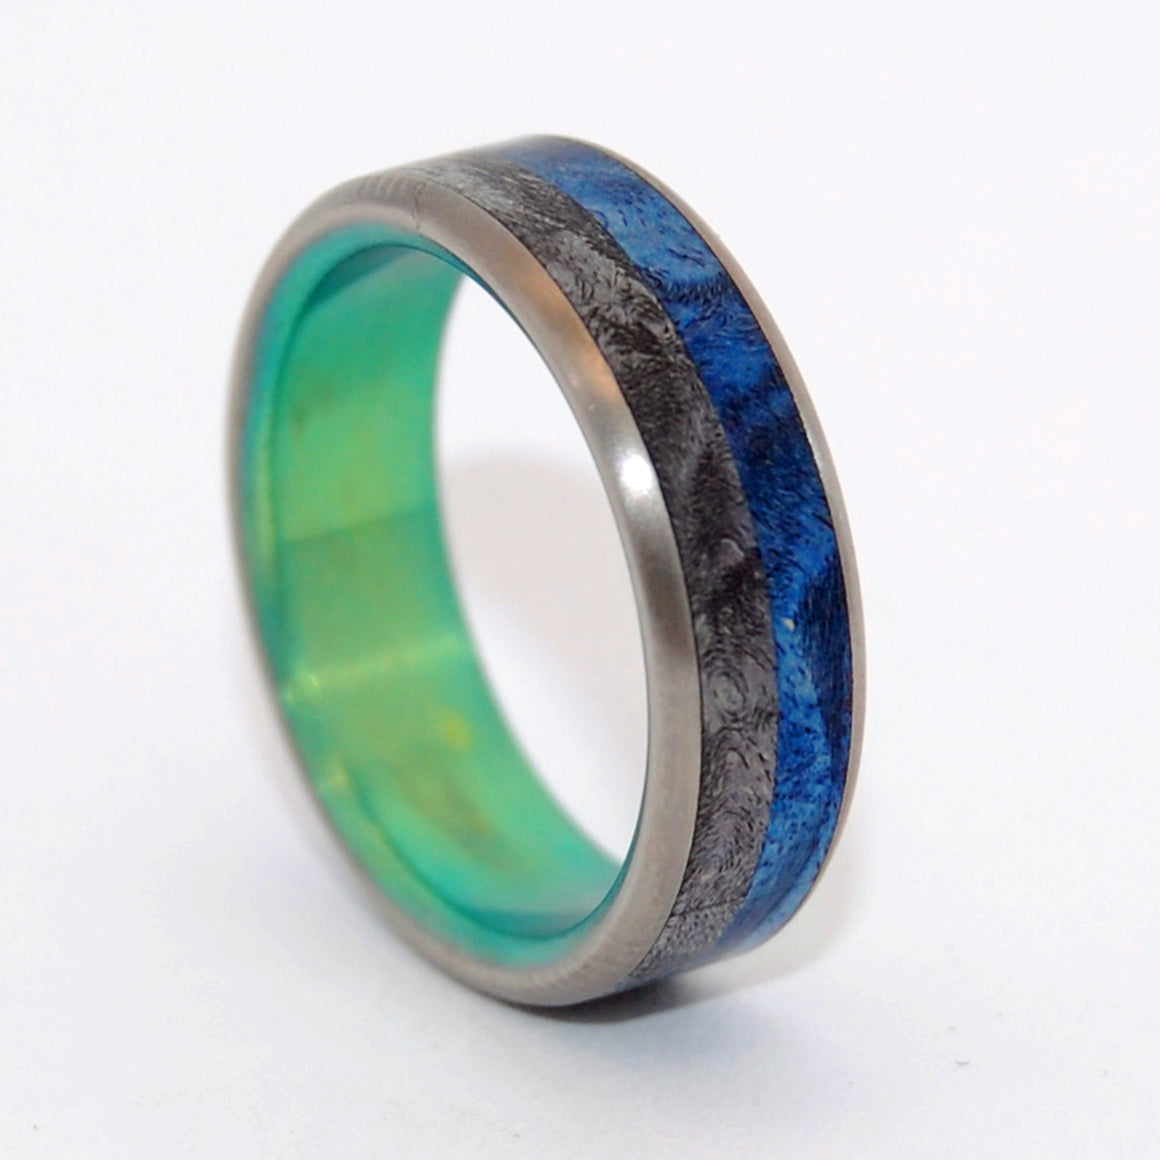 With You | Wood and Titanium Wedding Ring - Minter and Richter Designs